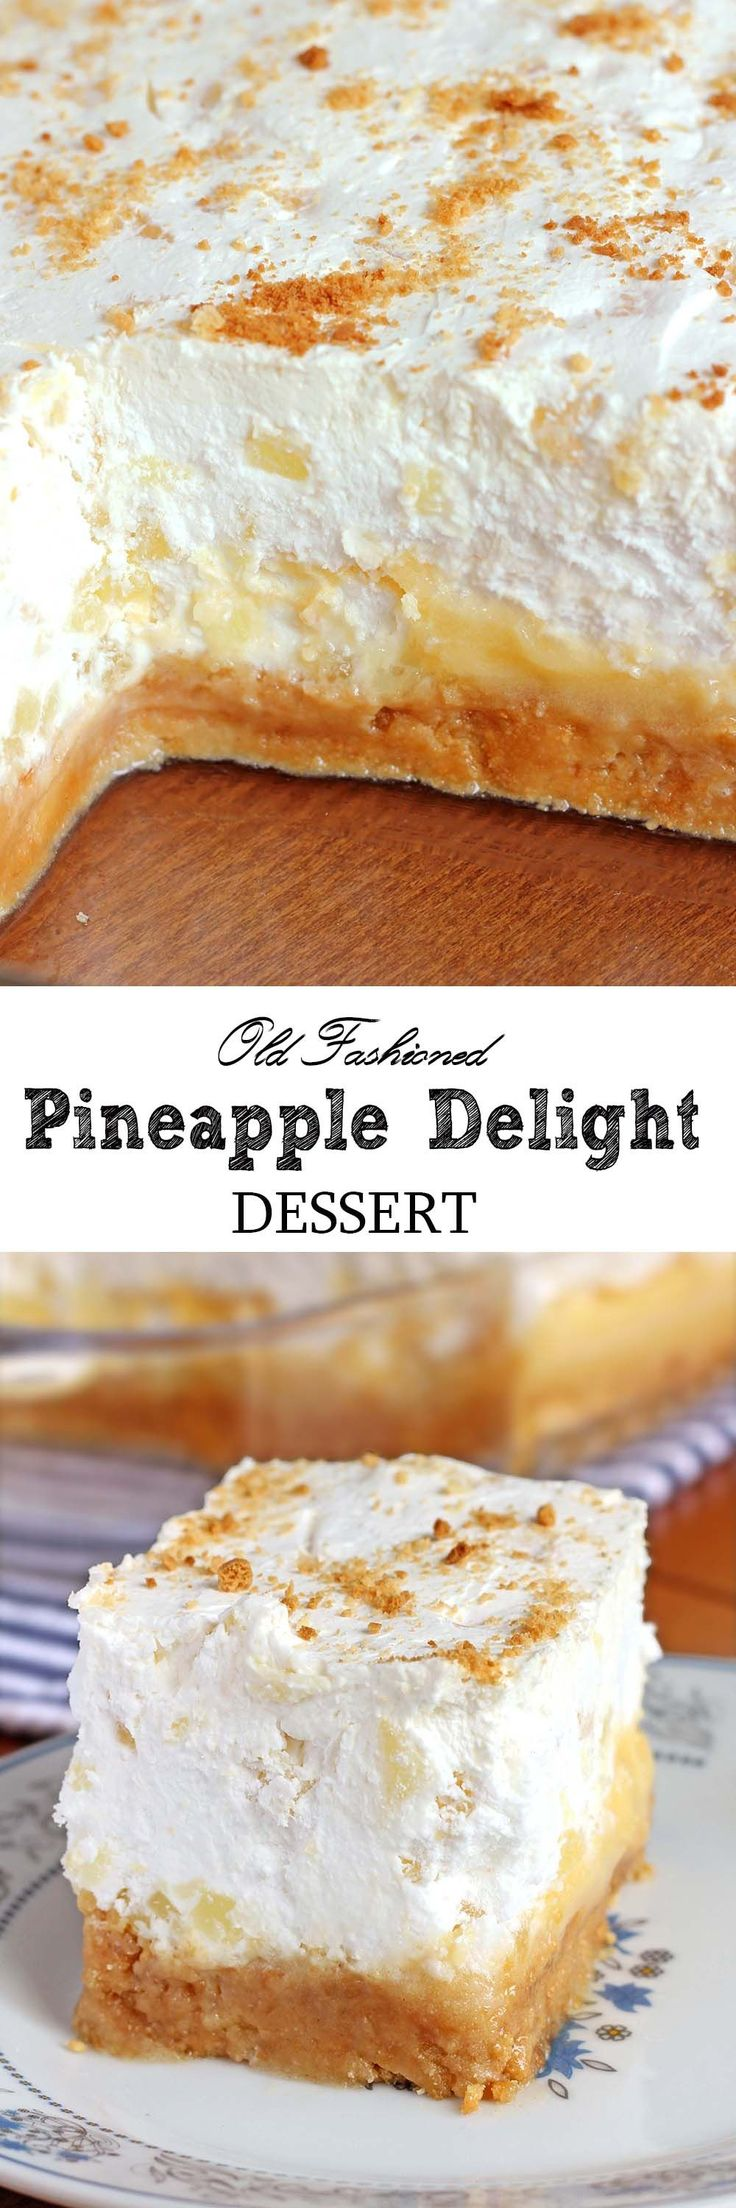 Delight Luck  online Pineapple   Reunions Recipe Pot for luxury and Desserts mens   shoes Family shop Dessert